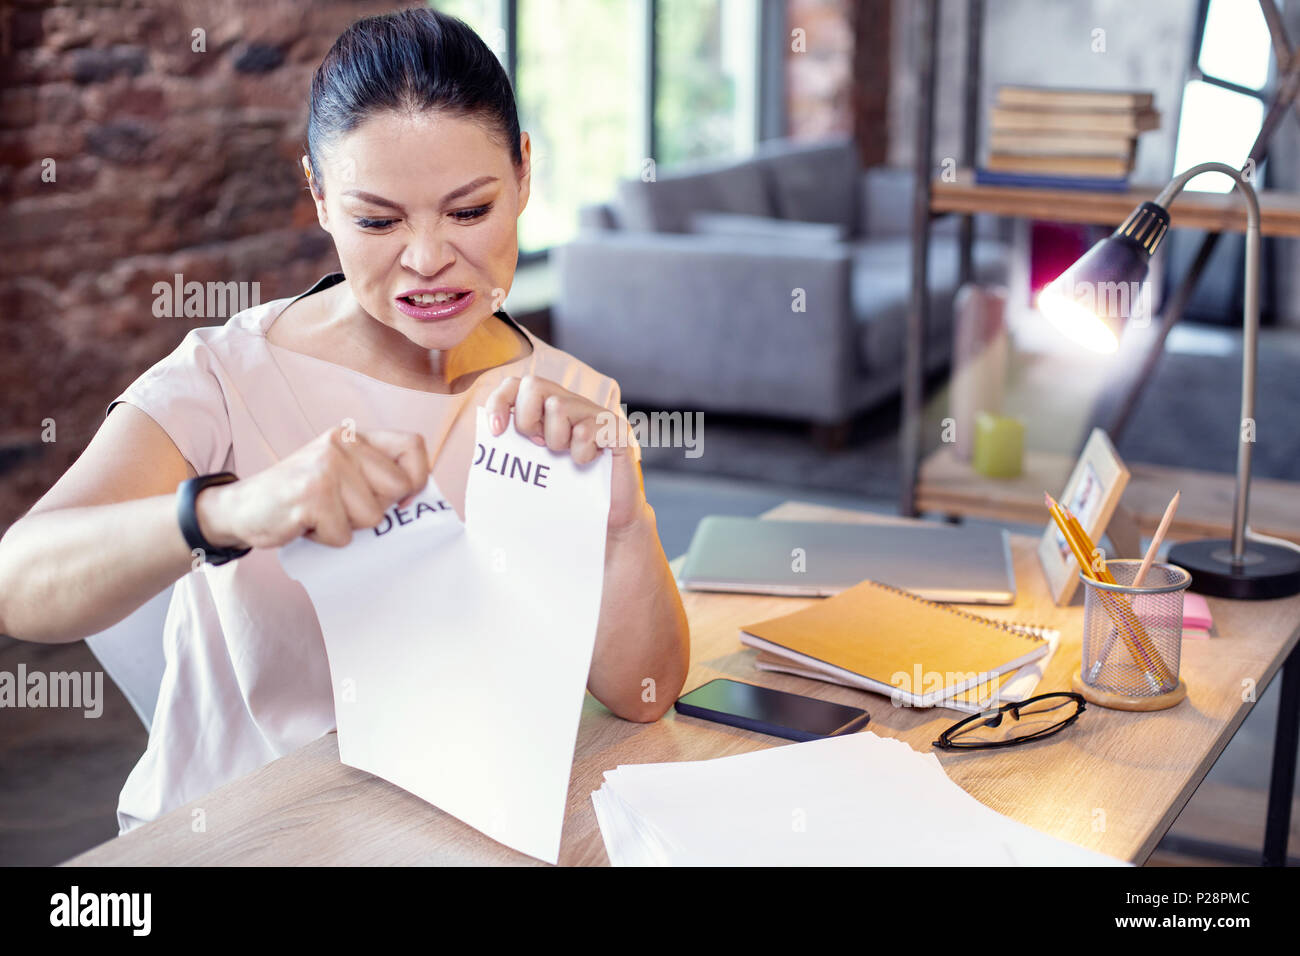 Stressful female employee pulling apart paper - Stock Image